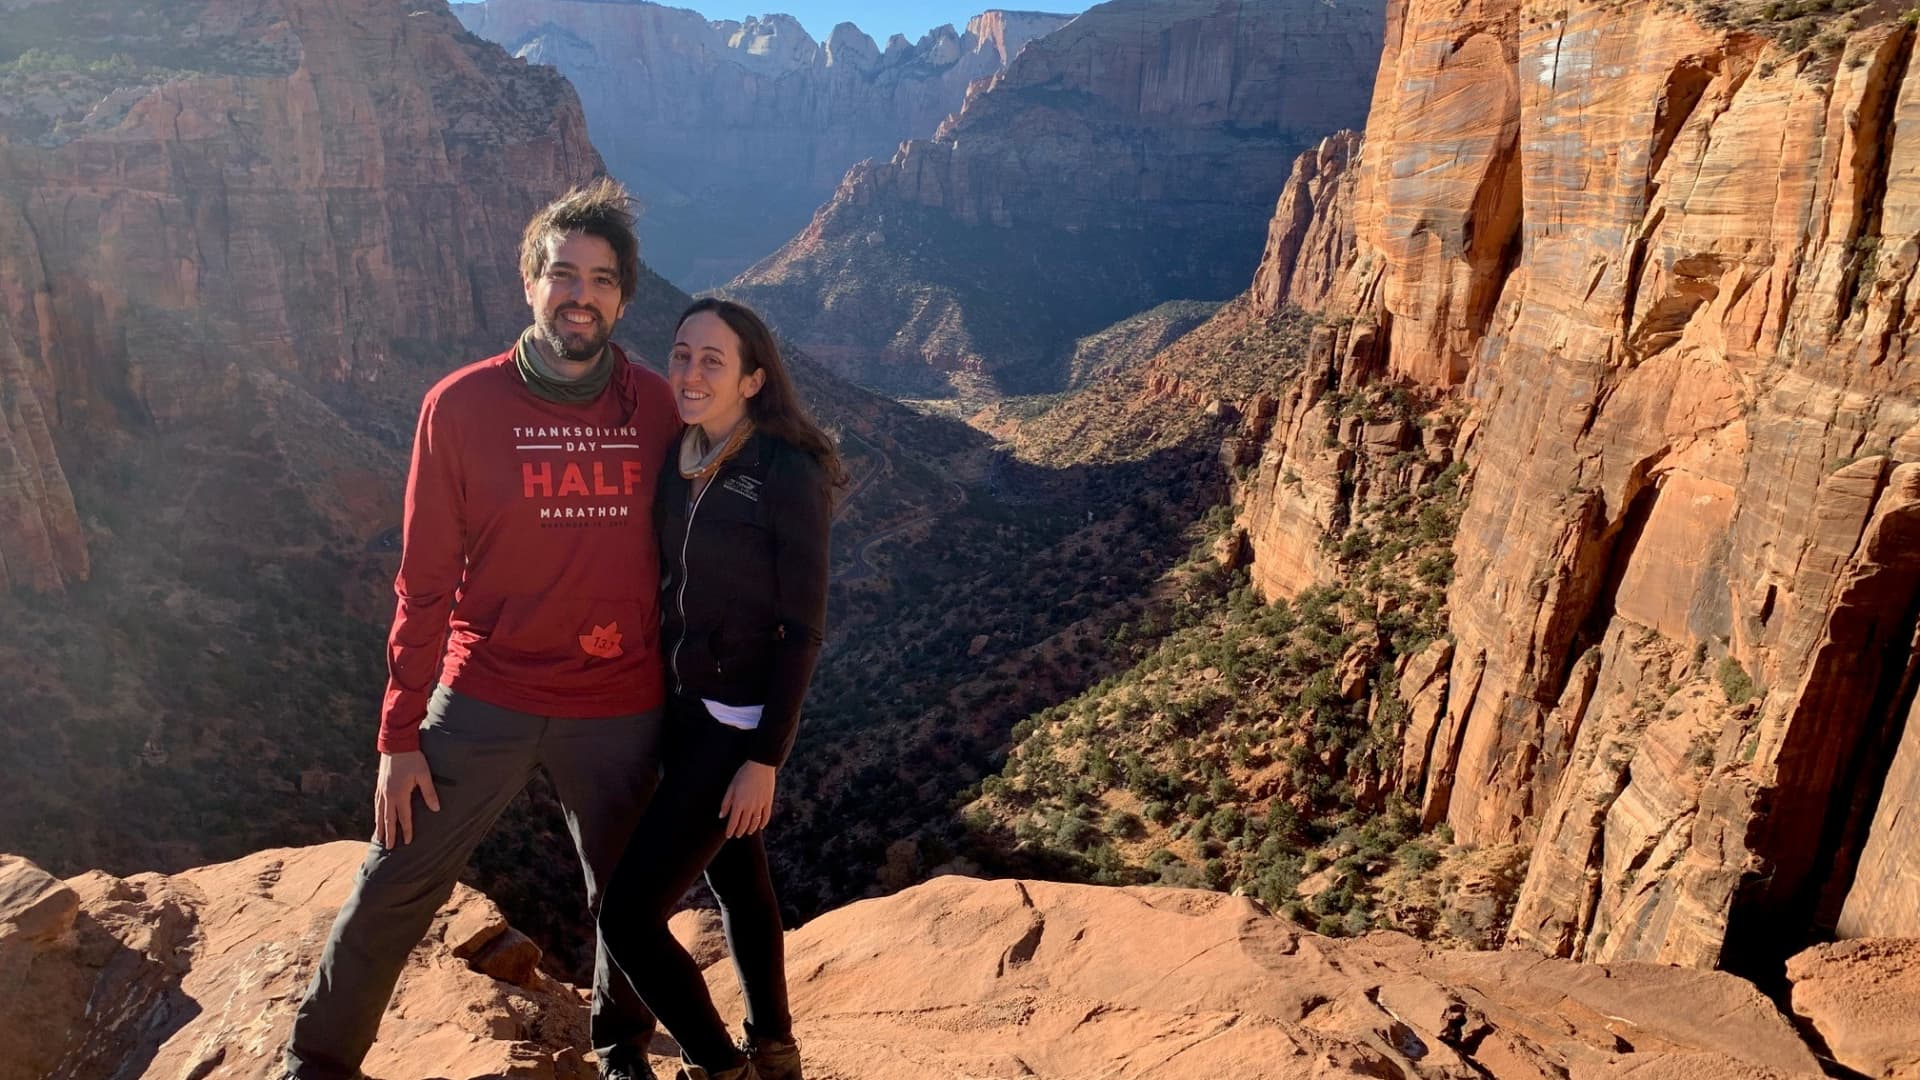 Eryn Schultz and her husband on their honeymoon in Zion National Park.